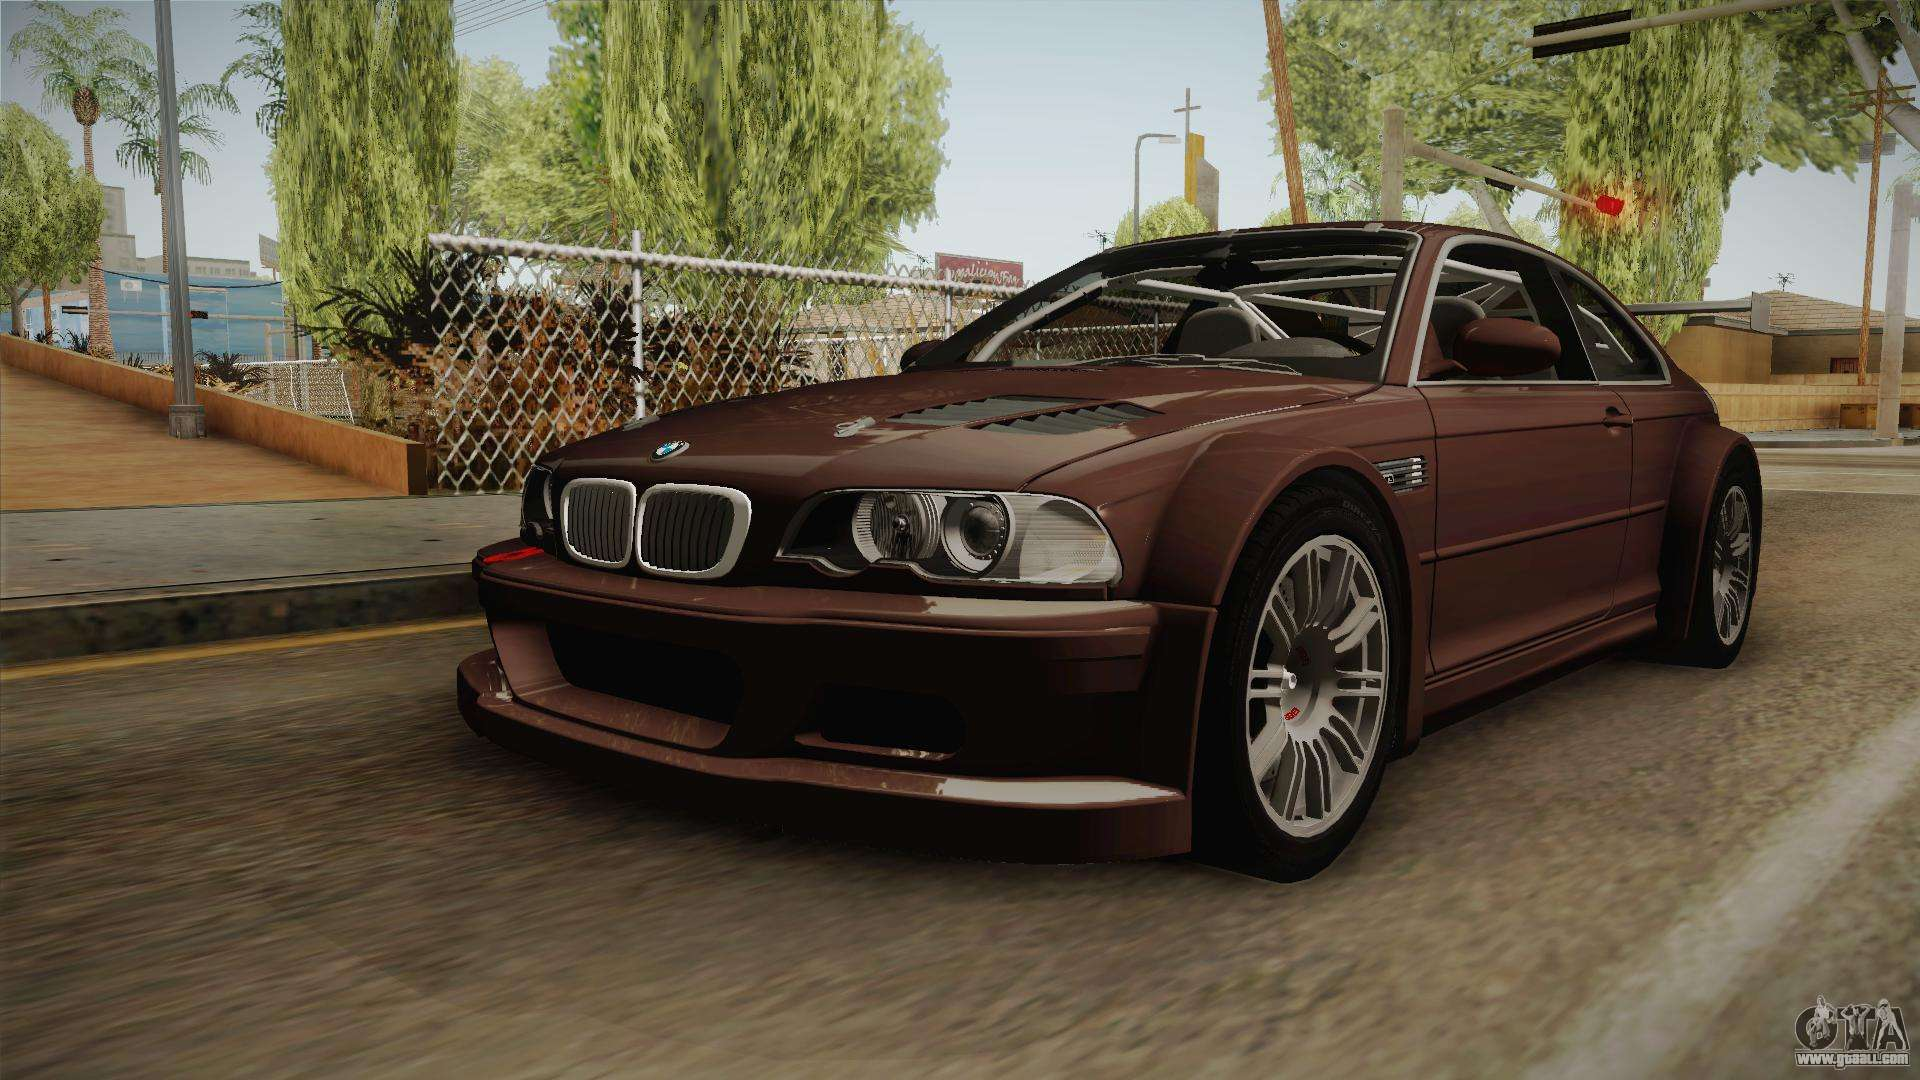 bmw m3 e46 2005 nfs mw livery for gta san andreas. Black Bedroom Furniture Sets. Home Design Ideas